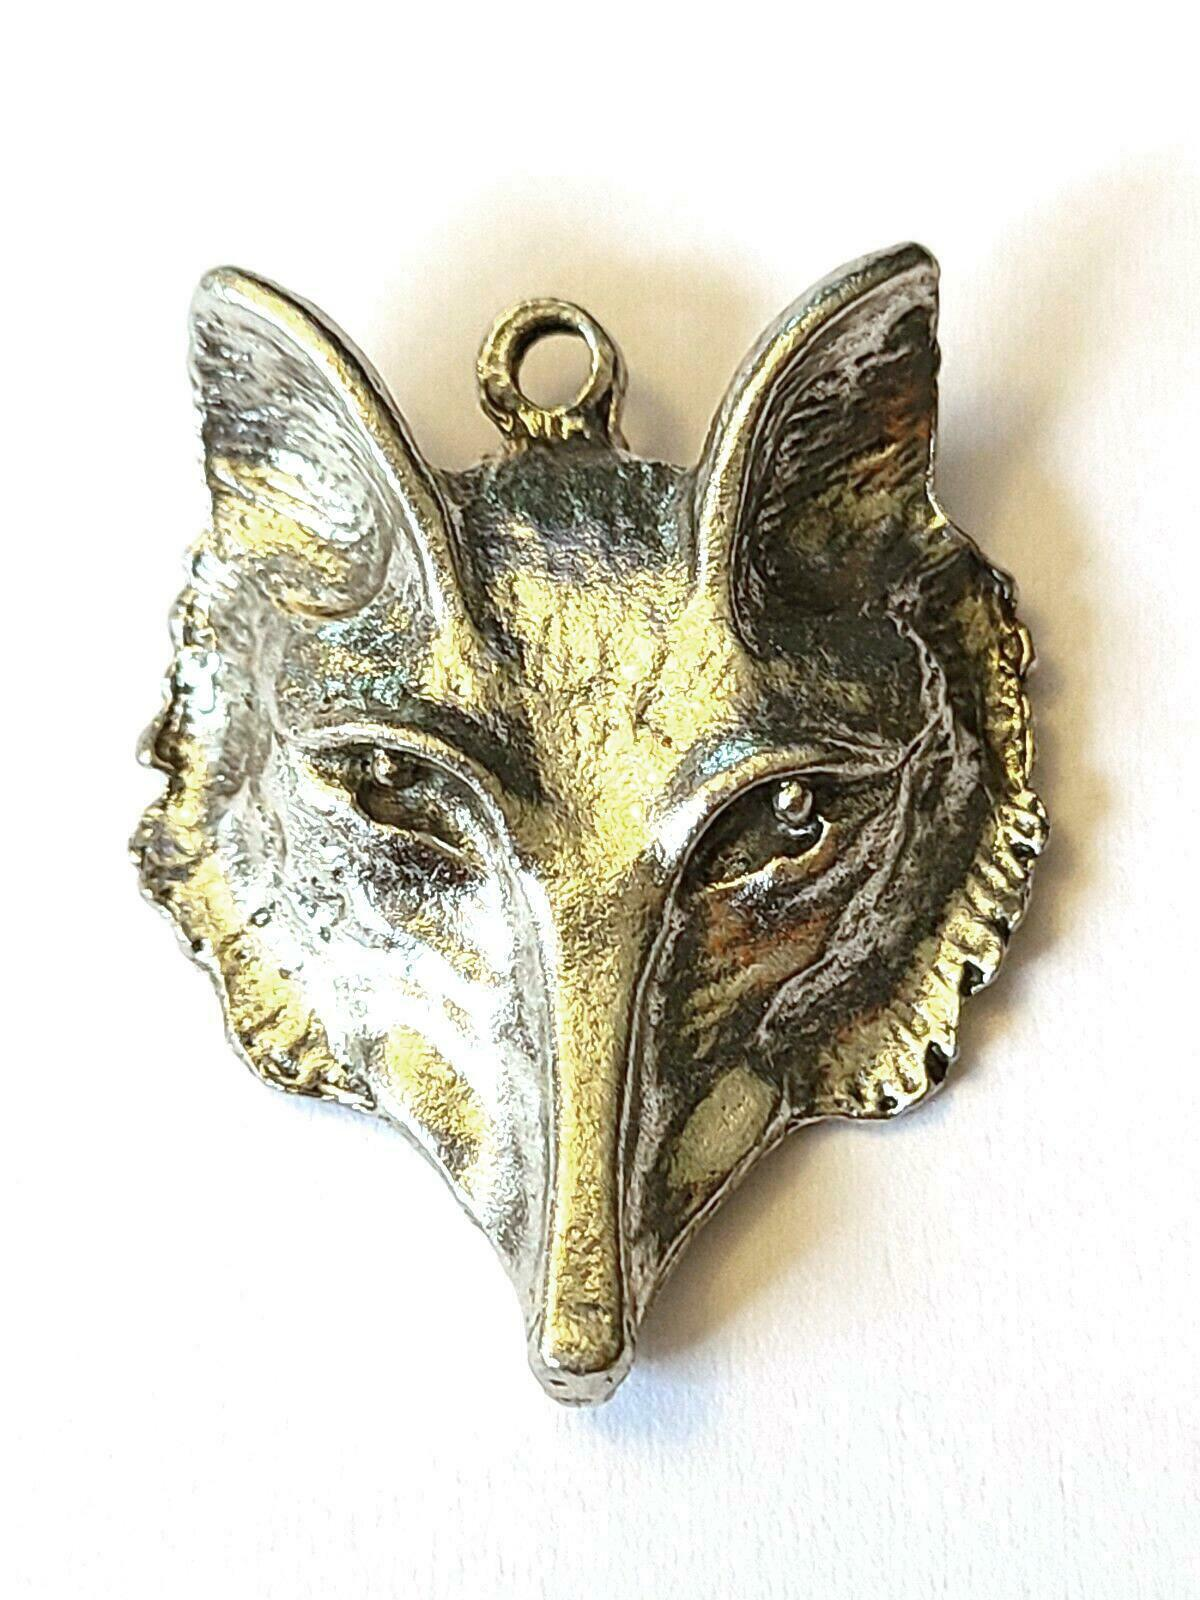 Wolf Fine Pewter Pendant /  Charms  - Approx. 1 1/8 Inches Tall  (T187)